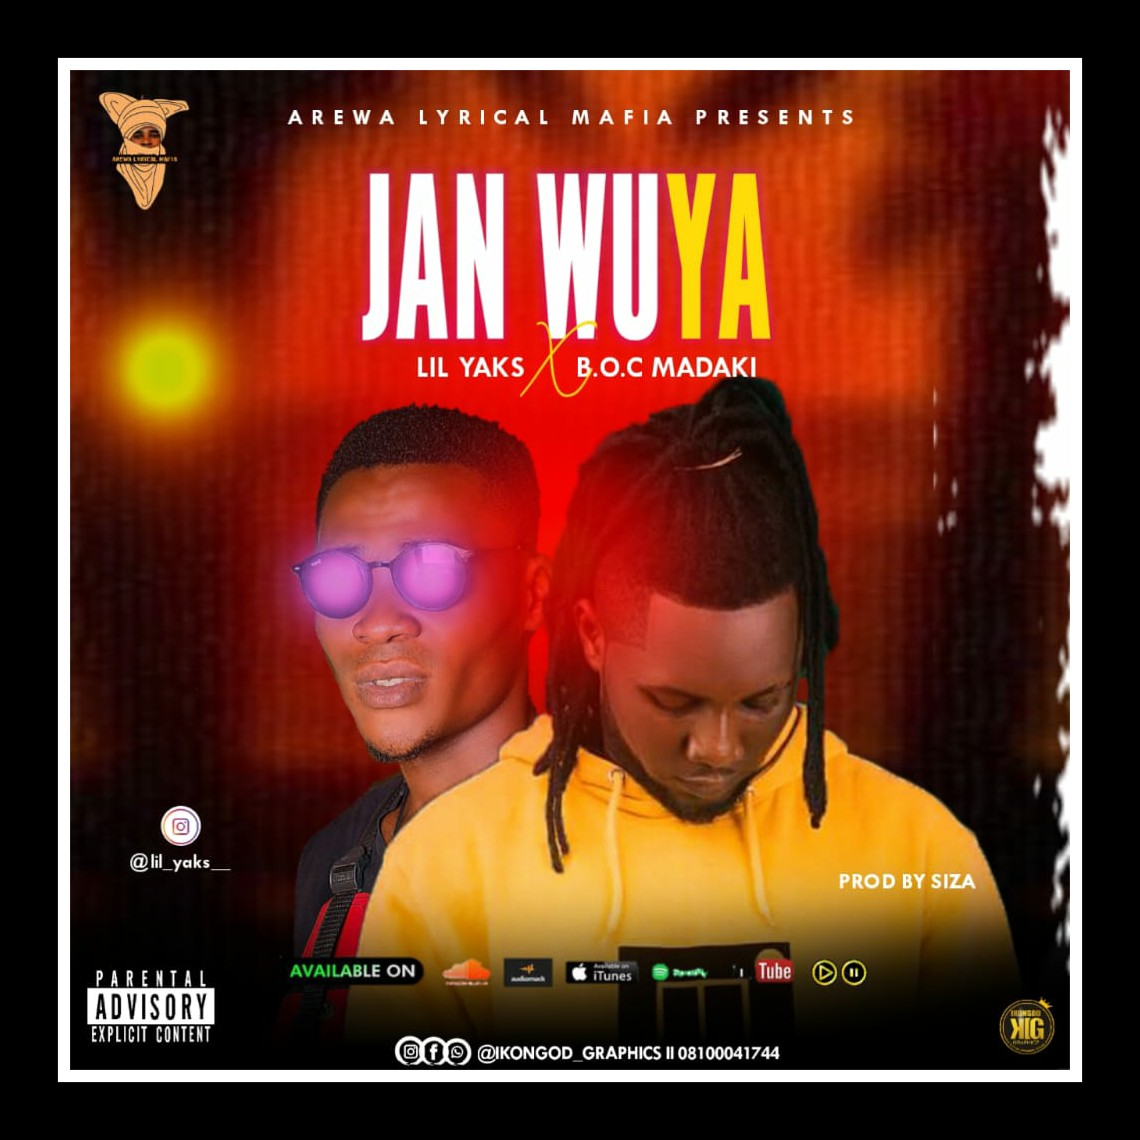 Ent. NEWS: Lil Yaks is about to release his new song with Boc Madaki titled Jan wuya